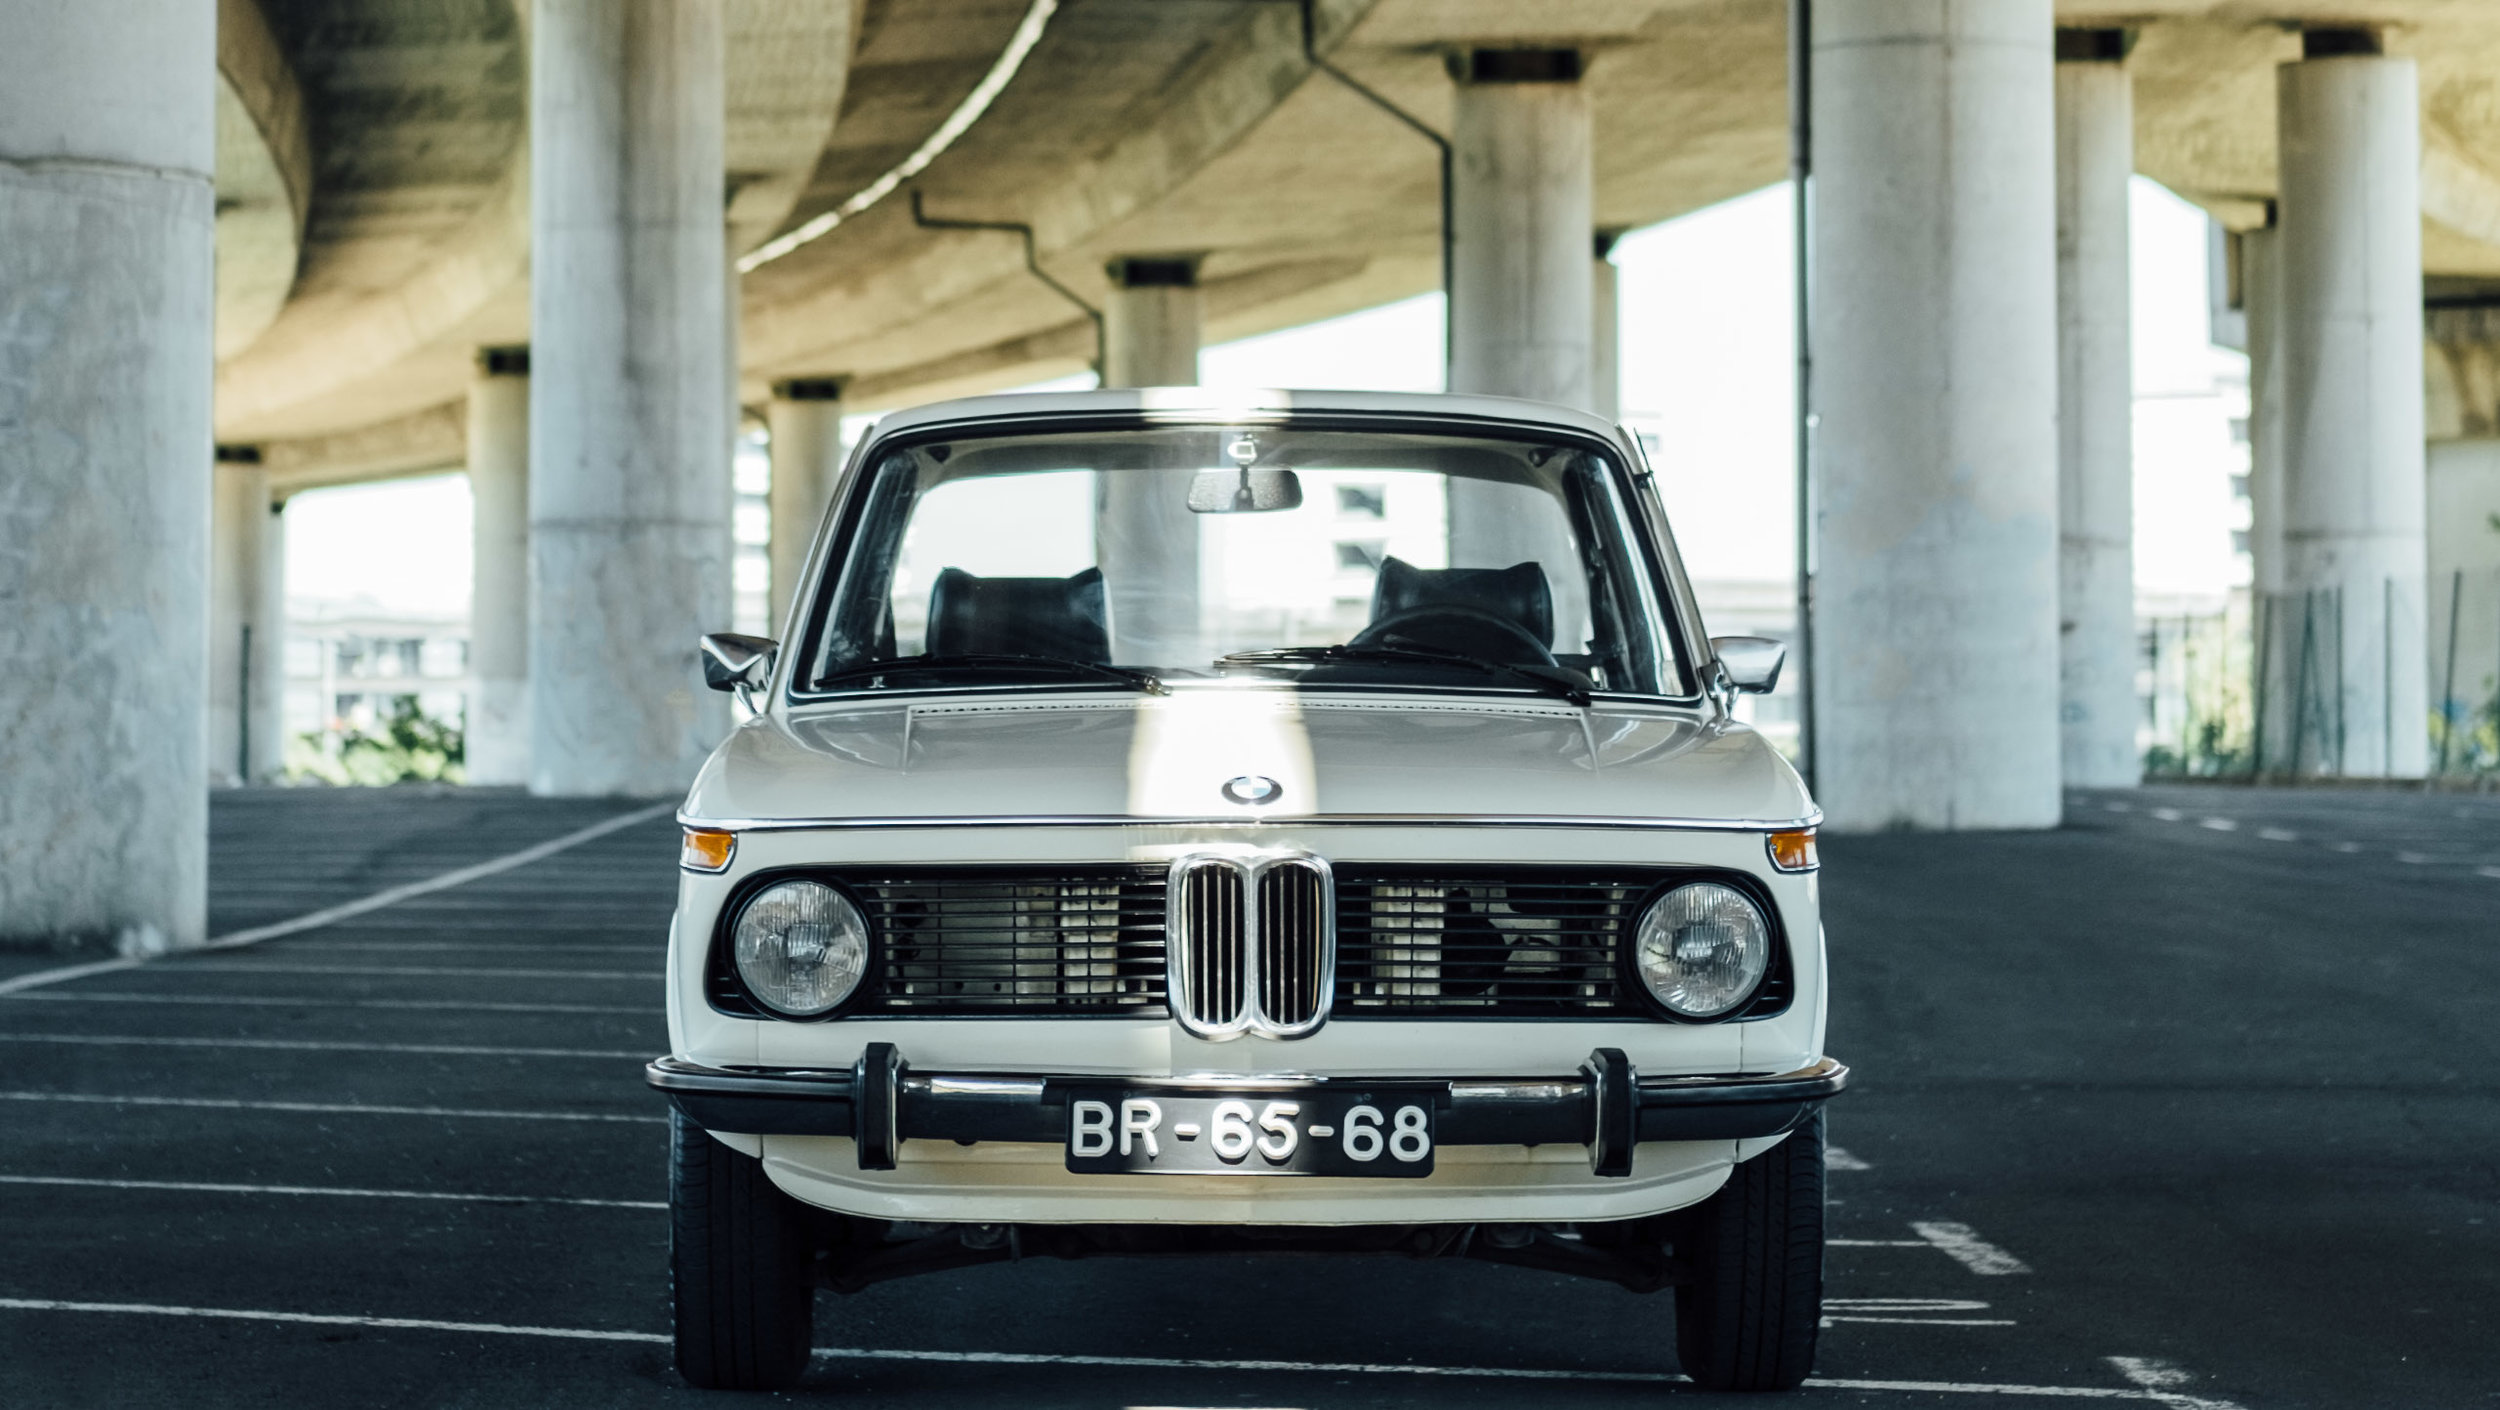 coolnvintage BMW 1602 (1 of 85).jpg